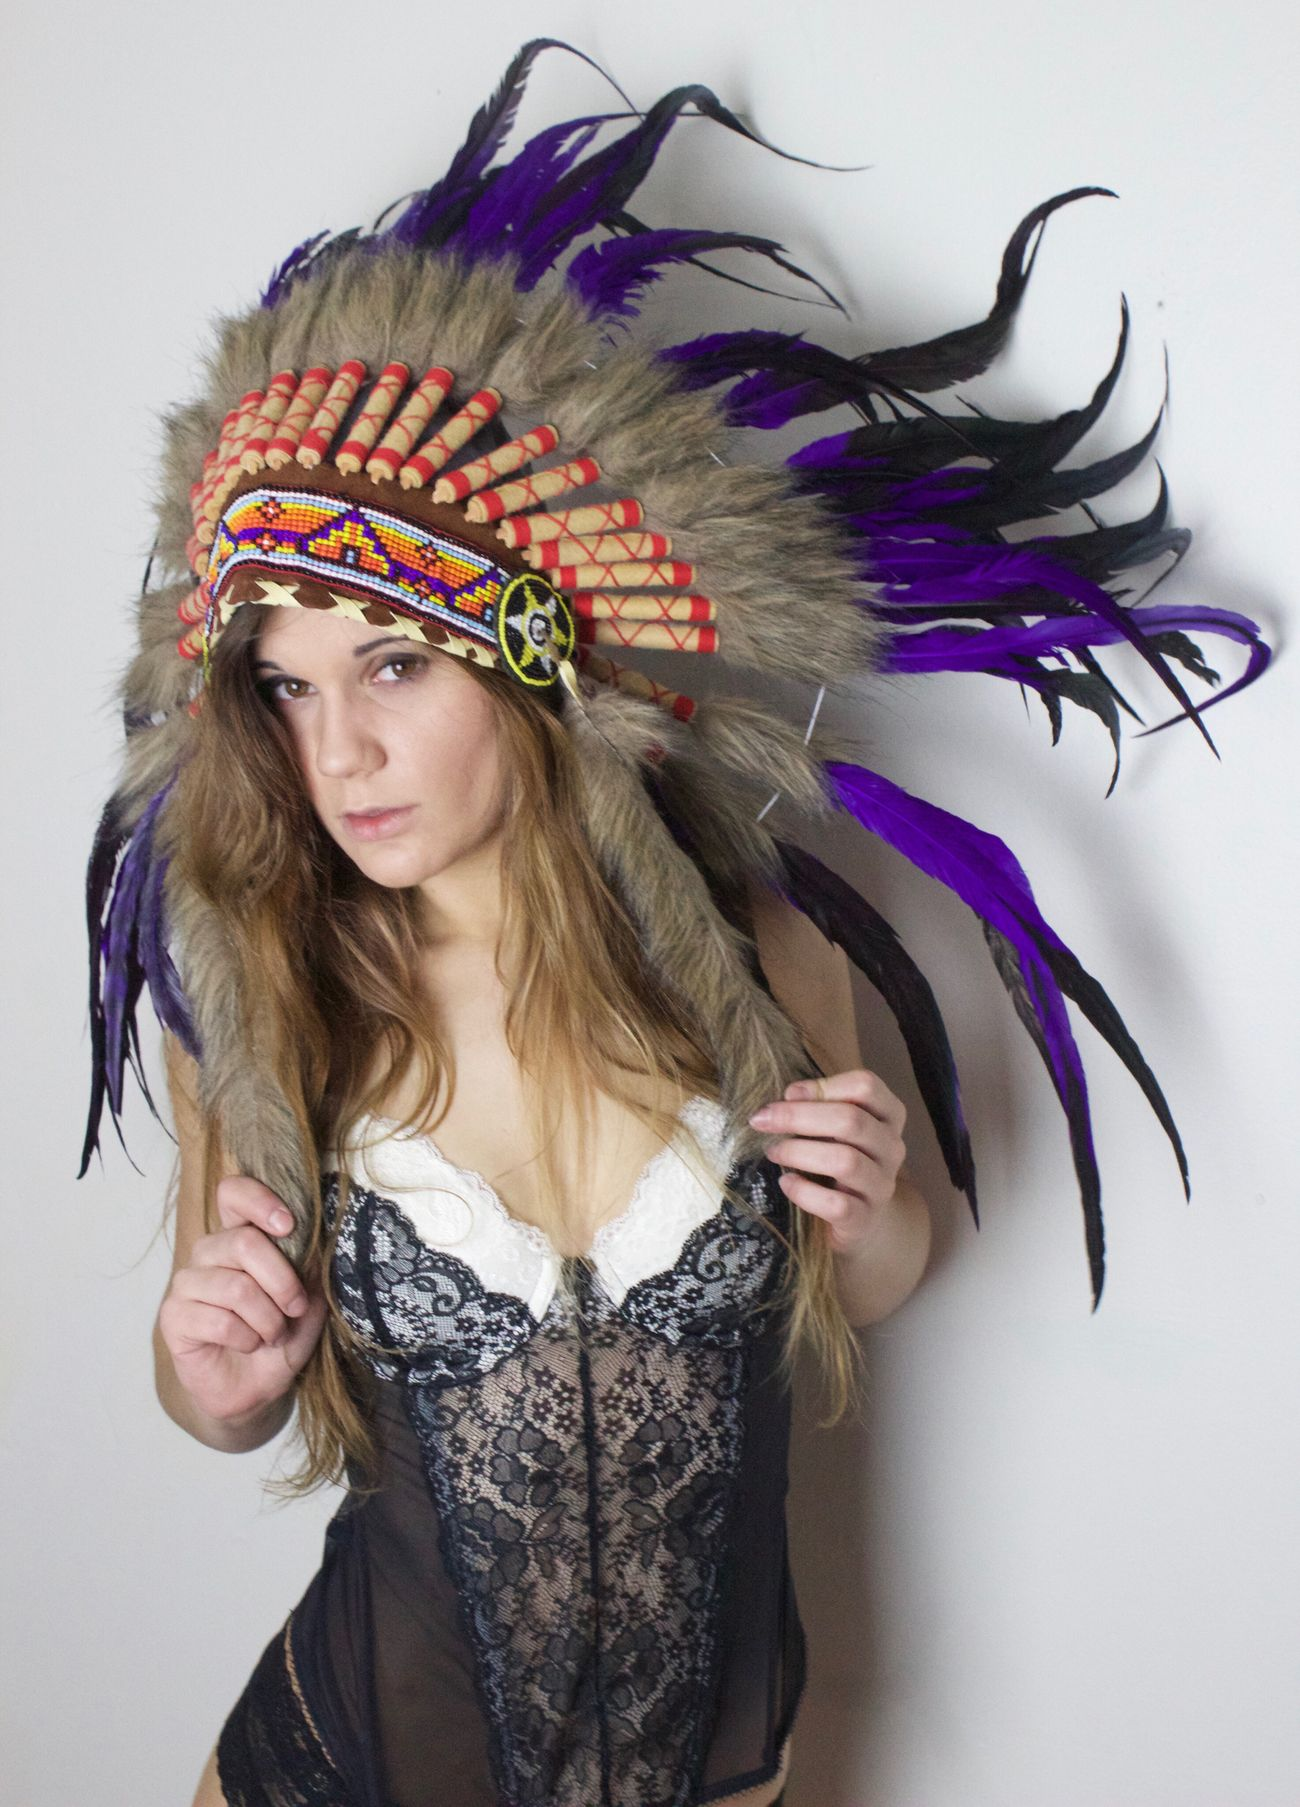 Beauty Headdress Studio Shot Dancer Blond Hair Multi Colored Feather  Beautiful Woman Beautiful People One Person Young Adult Adult Headwear Young Women Traditional Clothing Dancing Lifestyles Glamour Women Performance White Background EyeEm Best Shots WJII Photography Boudoir Portrait Of A Woman